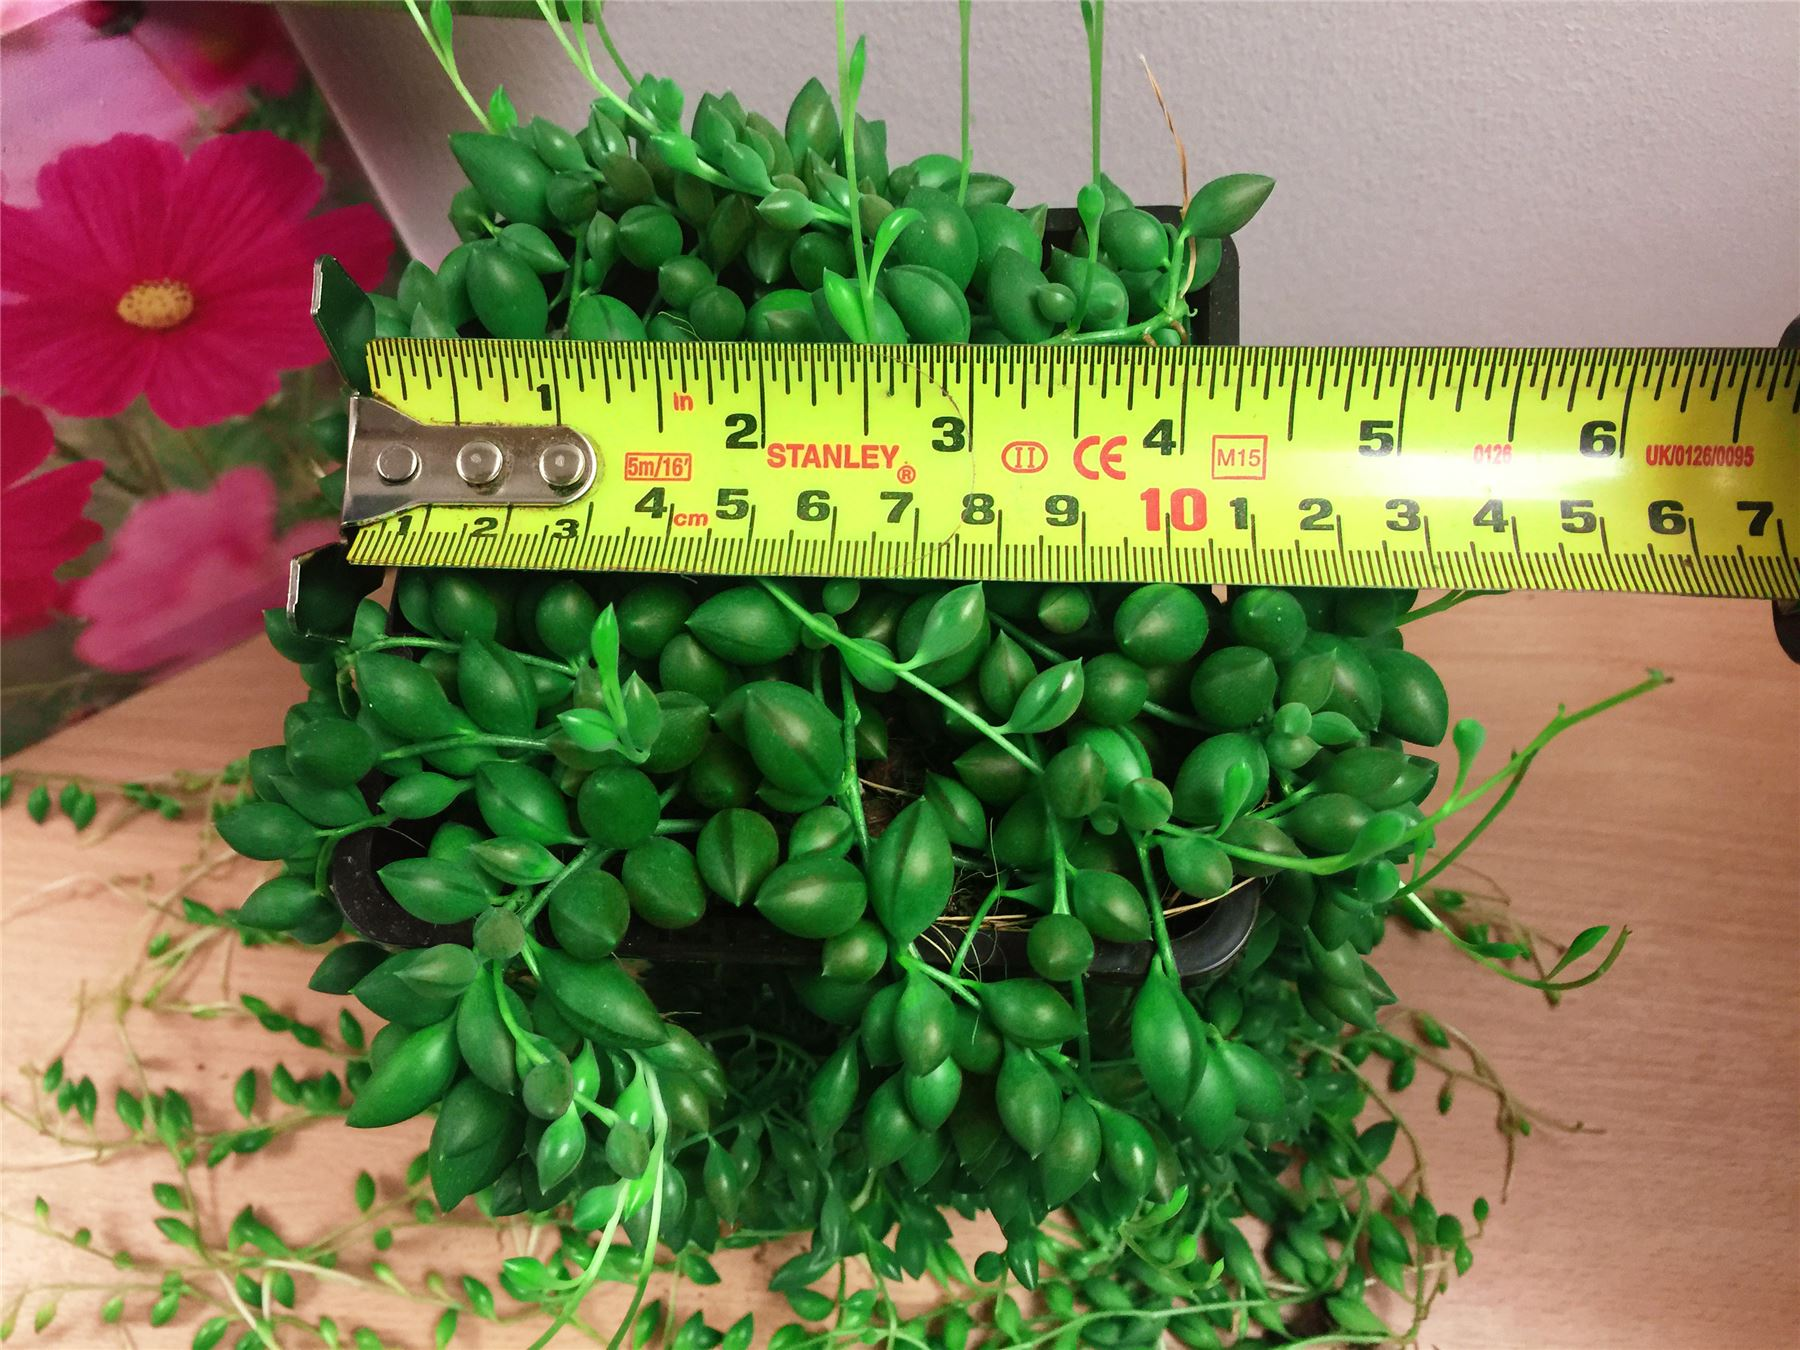 String of Pearls Peas Rosary Beads Vine Succulent Indoor Plant @ Glass PVC Pot